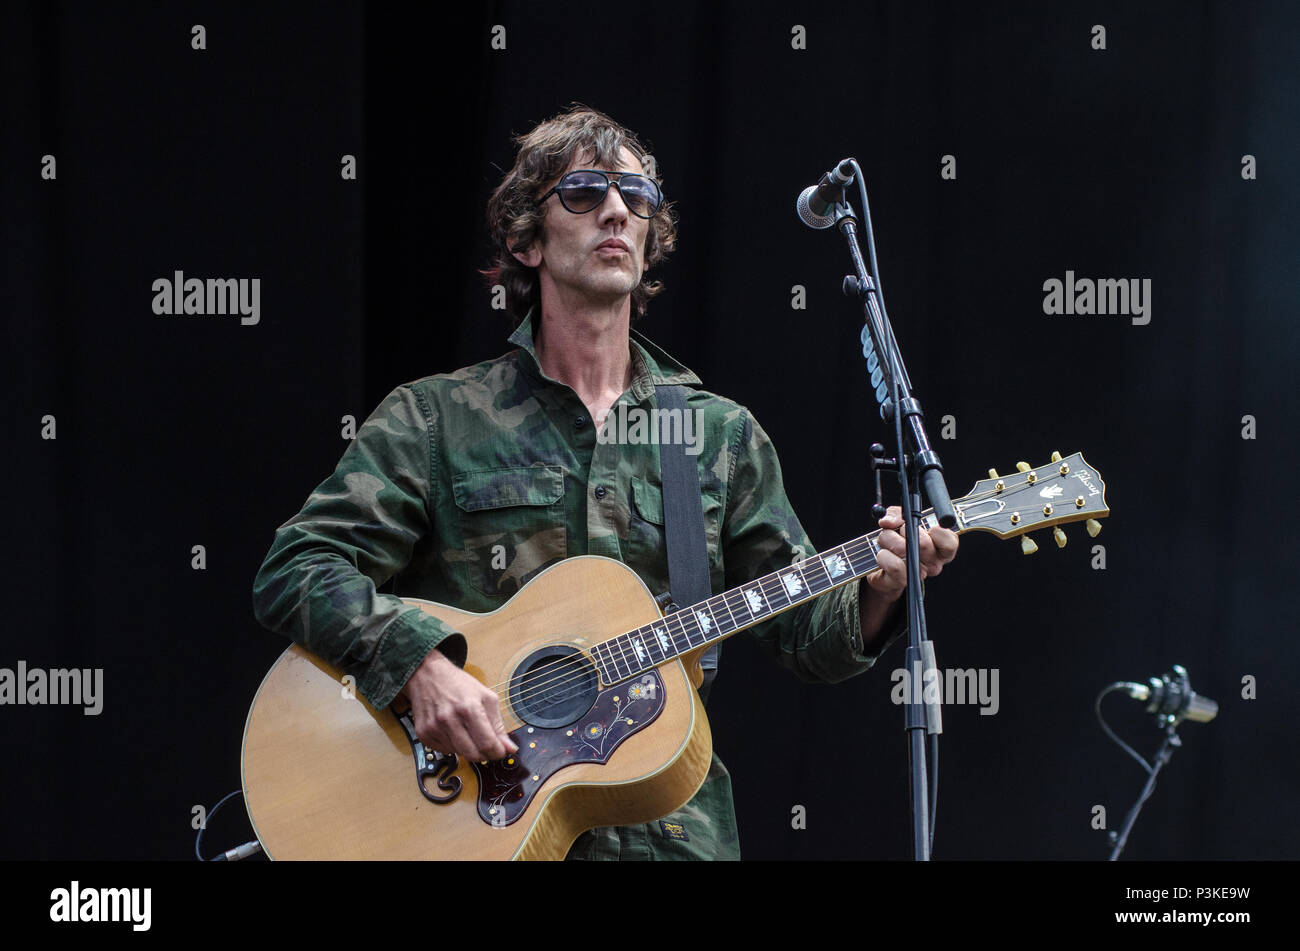 Richard Ashcroft The Verve Performing Live - Stock Image